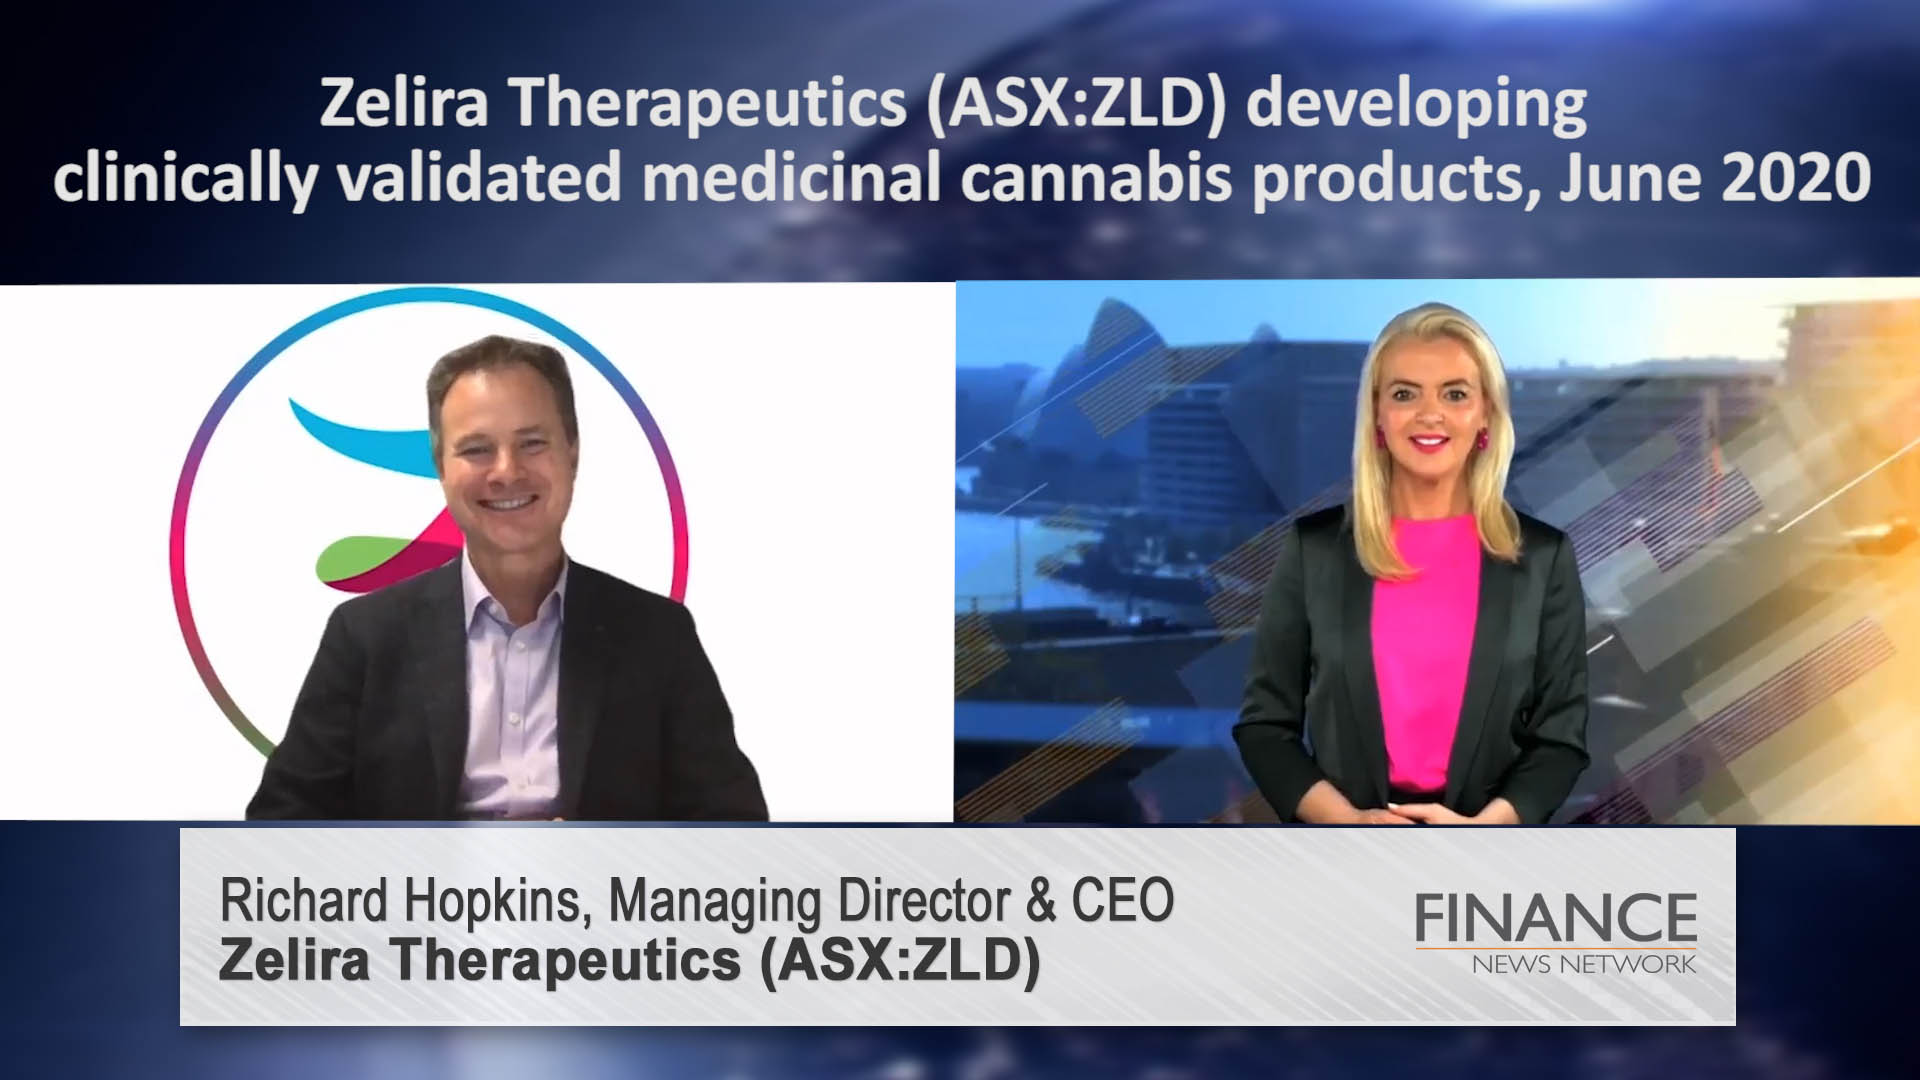 Zelira Therapeutics (ASX:ZLD) developing clinically validated medicinal cannabis products